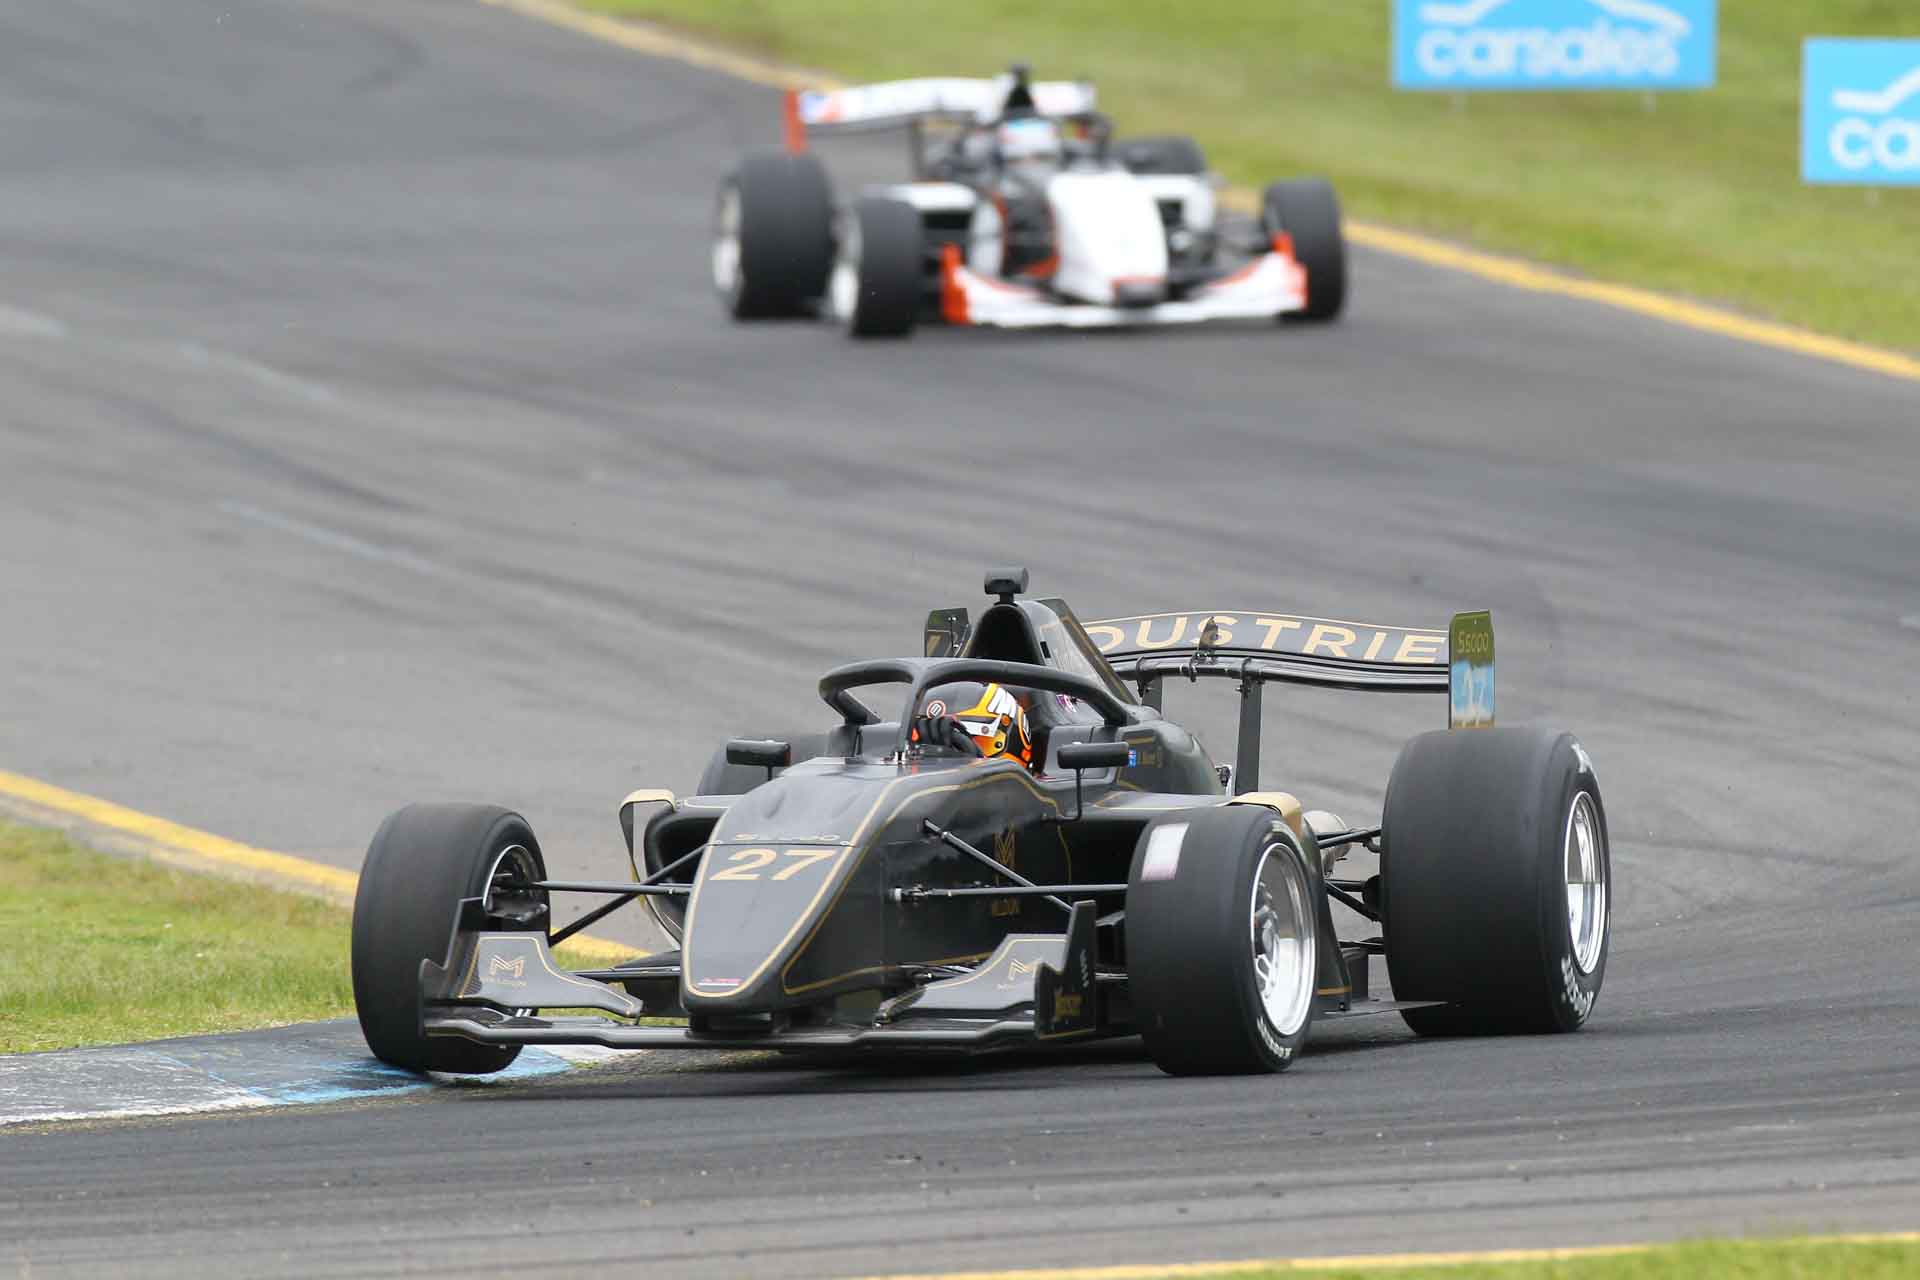 Barton Mawer Motorsport competing in the 2020 S5000 Series in Australia on the racetrack